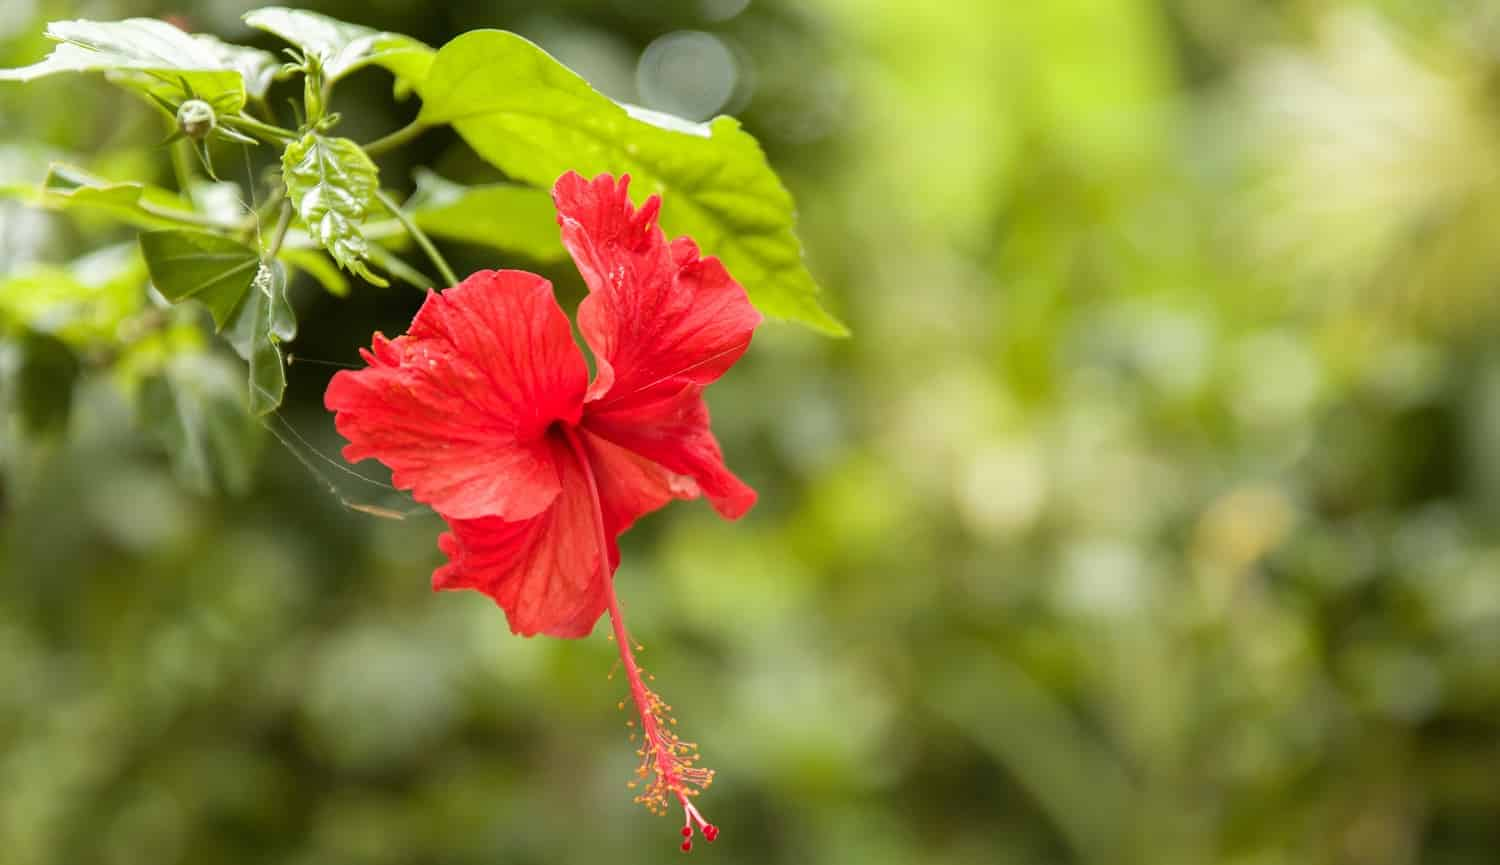 A closeup focused shot of a beautiful red-petaled Chinese hibiscus flower with green leaves